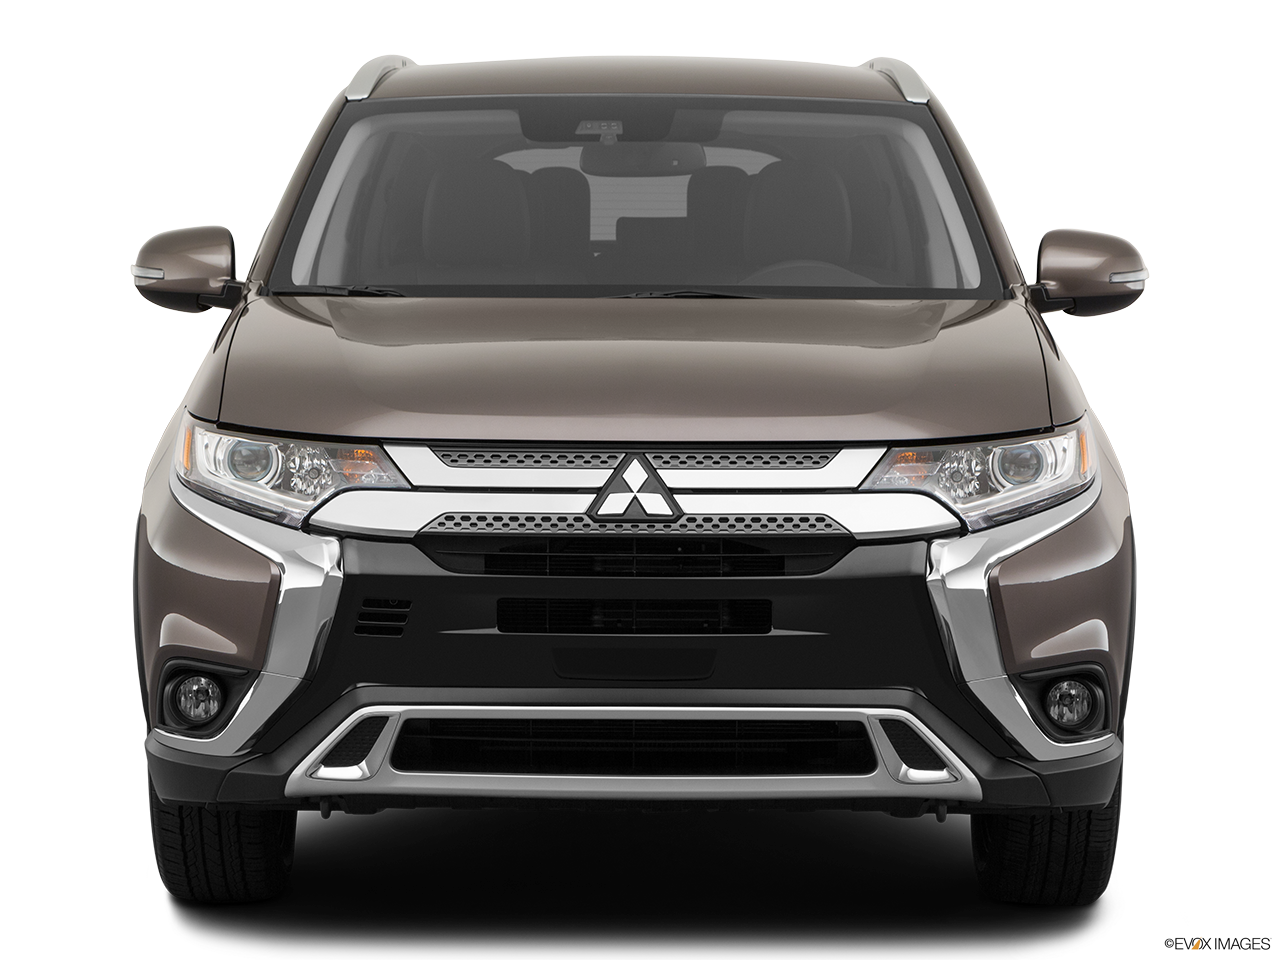 Front view of the Mitsubishi Outlander PHEV